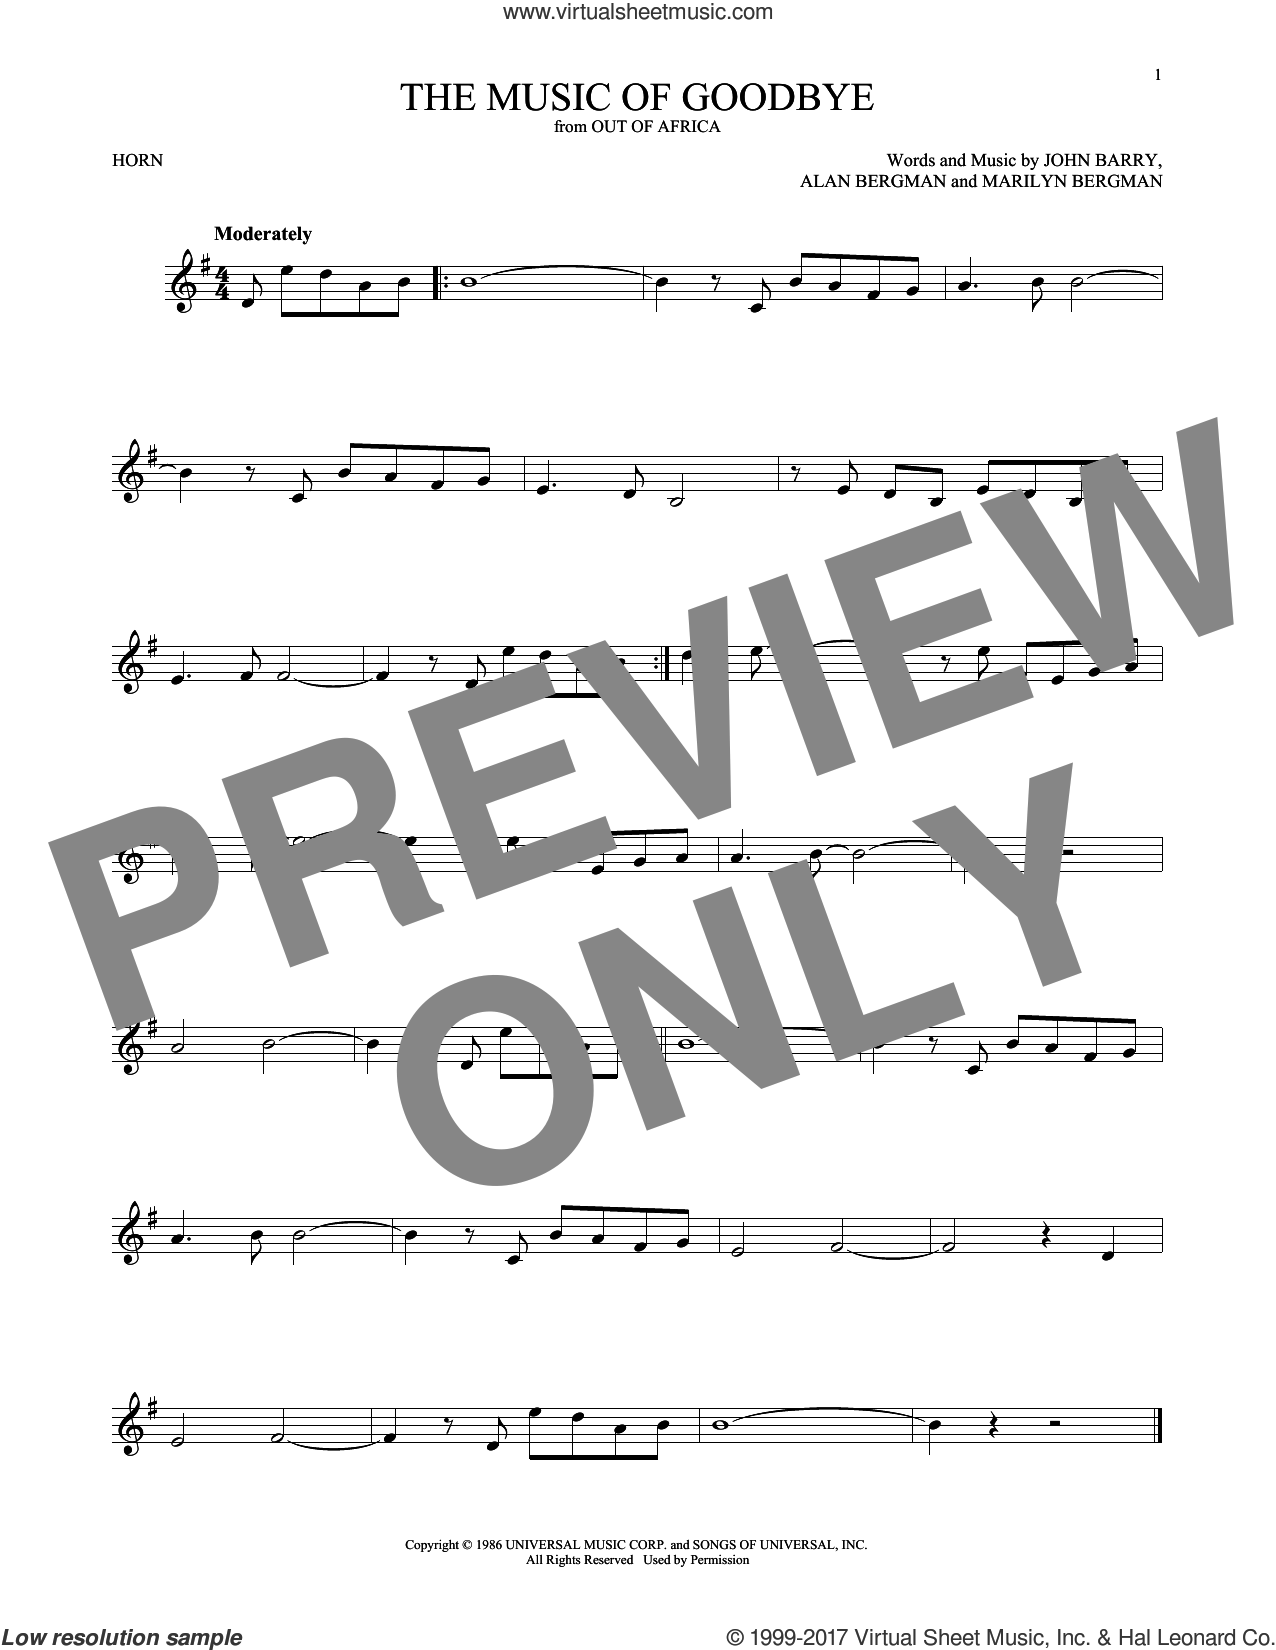 The Music Of Goodbye sheet music for horn solo by John Barry, Alan Bergman and Marilyn Bergman, intermediate skill level